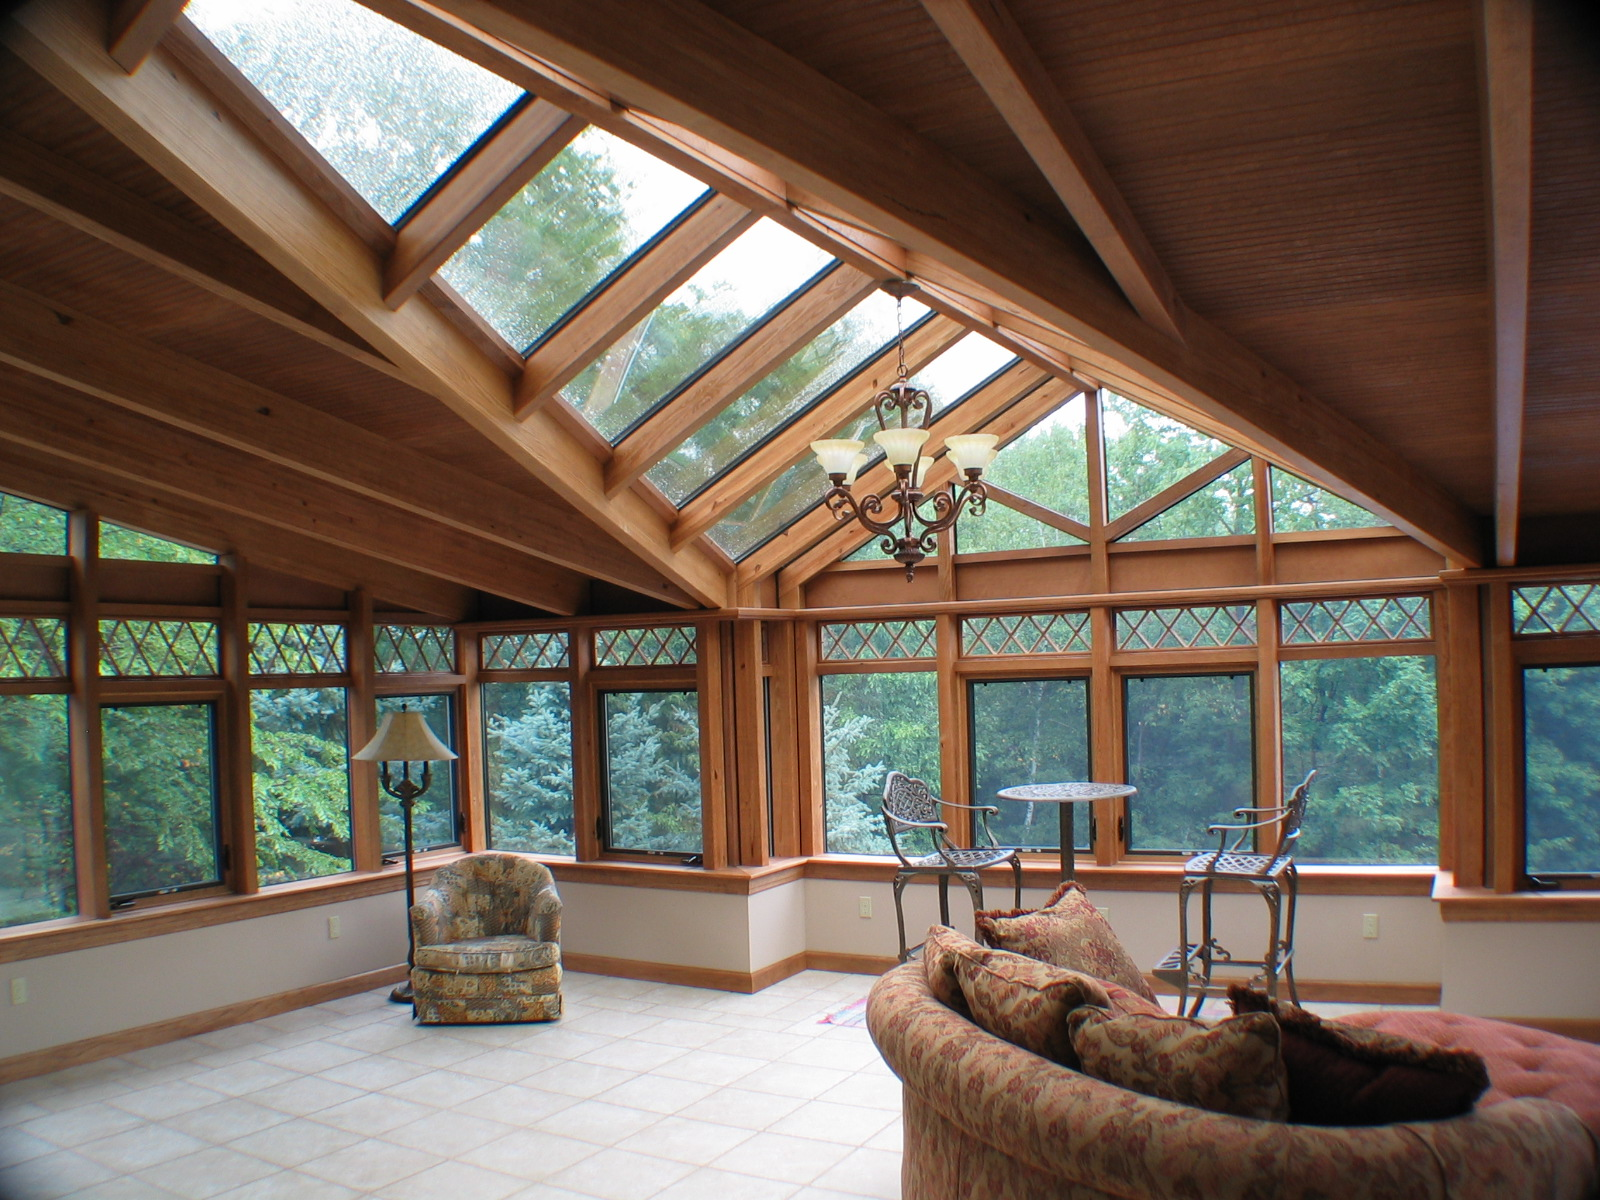 Solar innovations announces unique maintenance free skylights Wooden interior